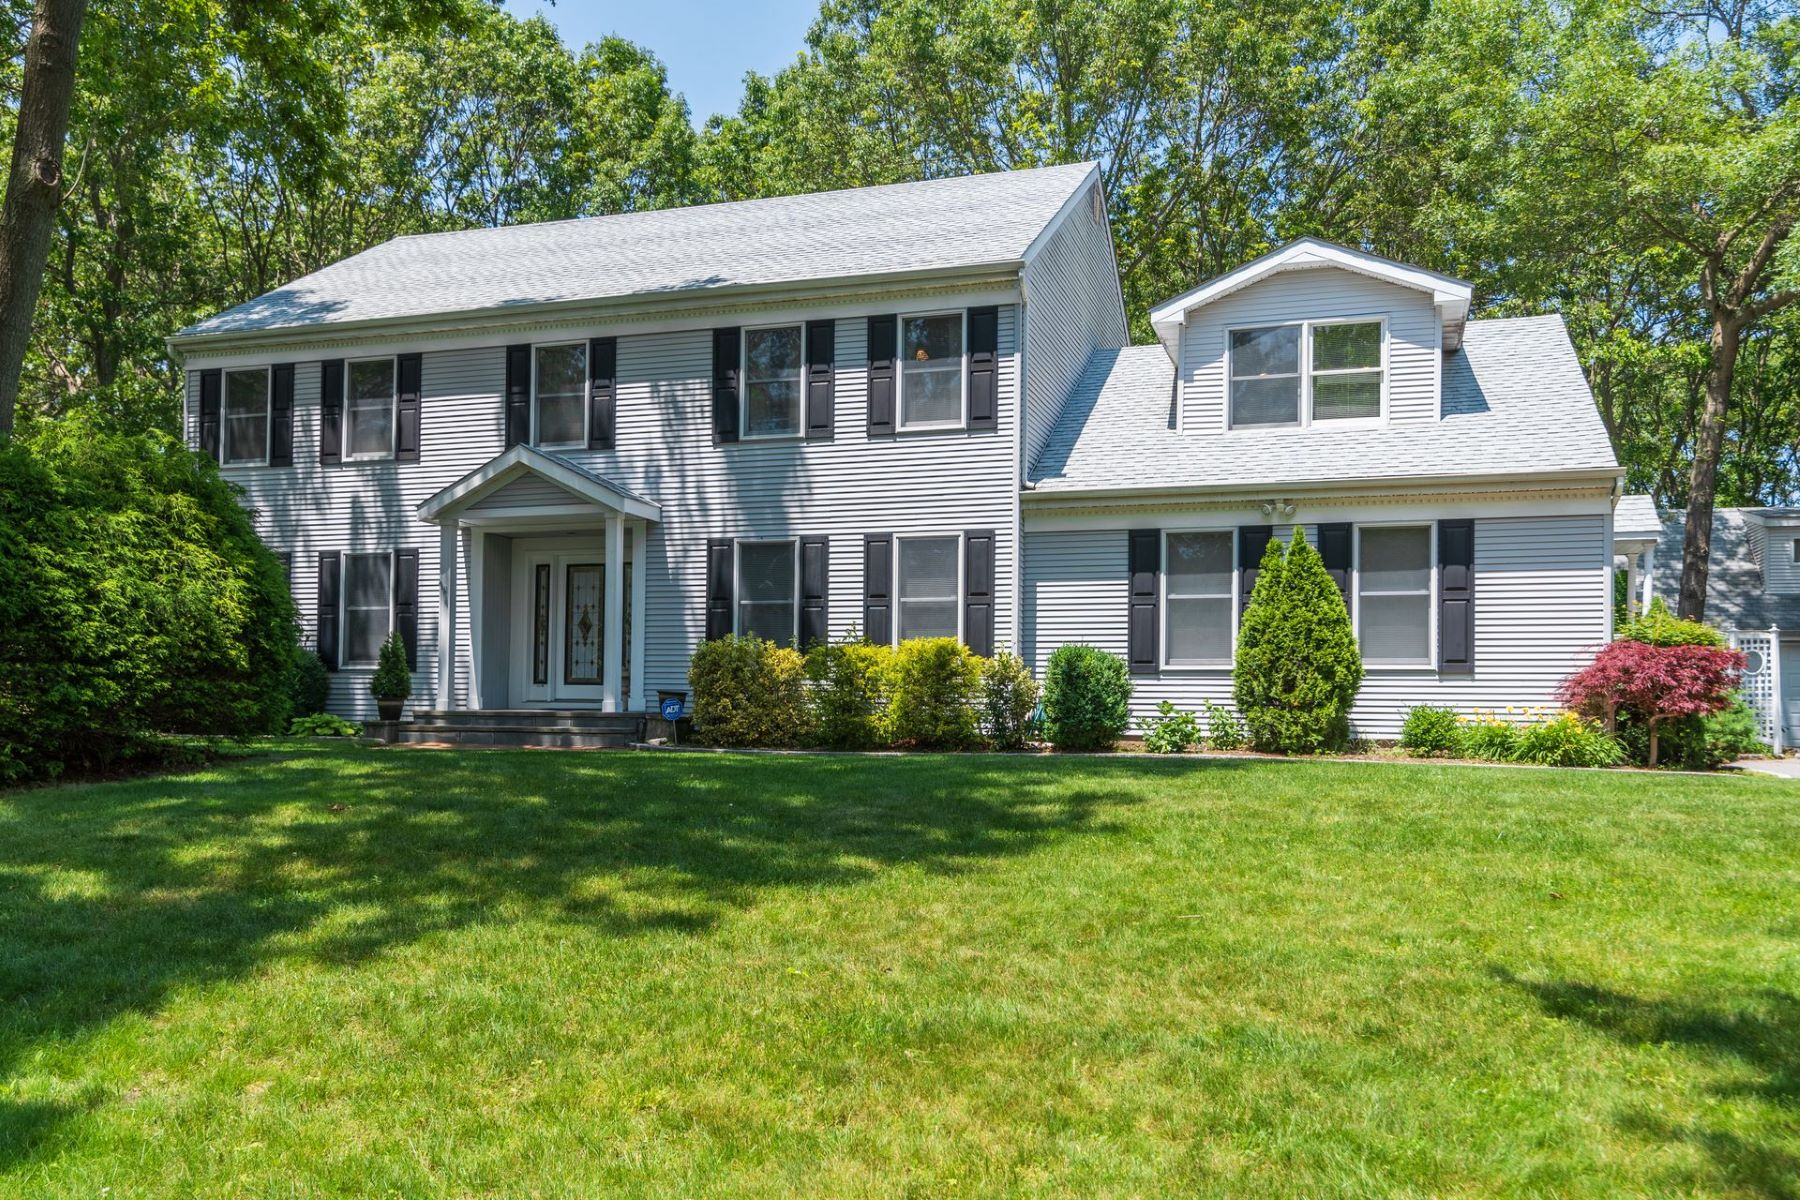 Single Family Homes for Sale at Smithtown 5 Northside Cir Smithtown, New York 11787 United States